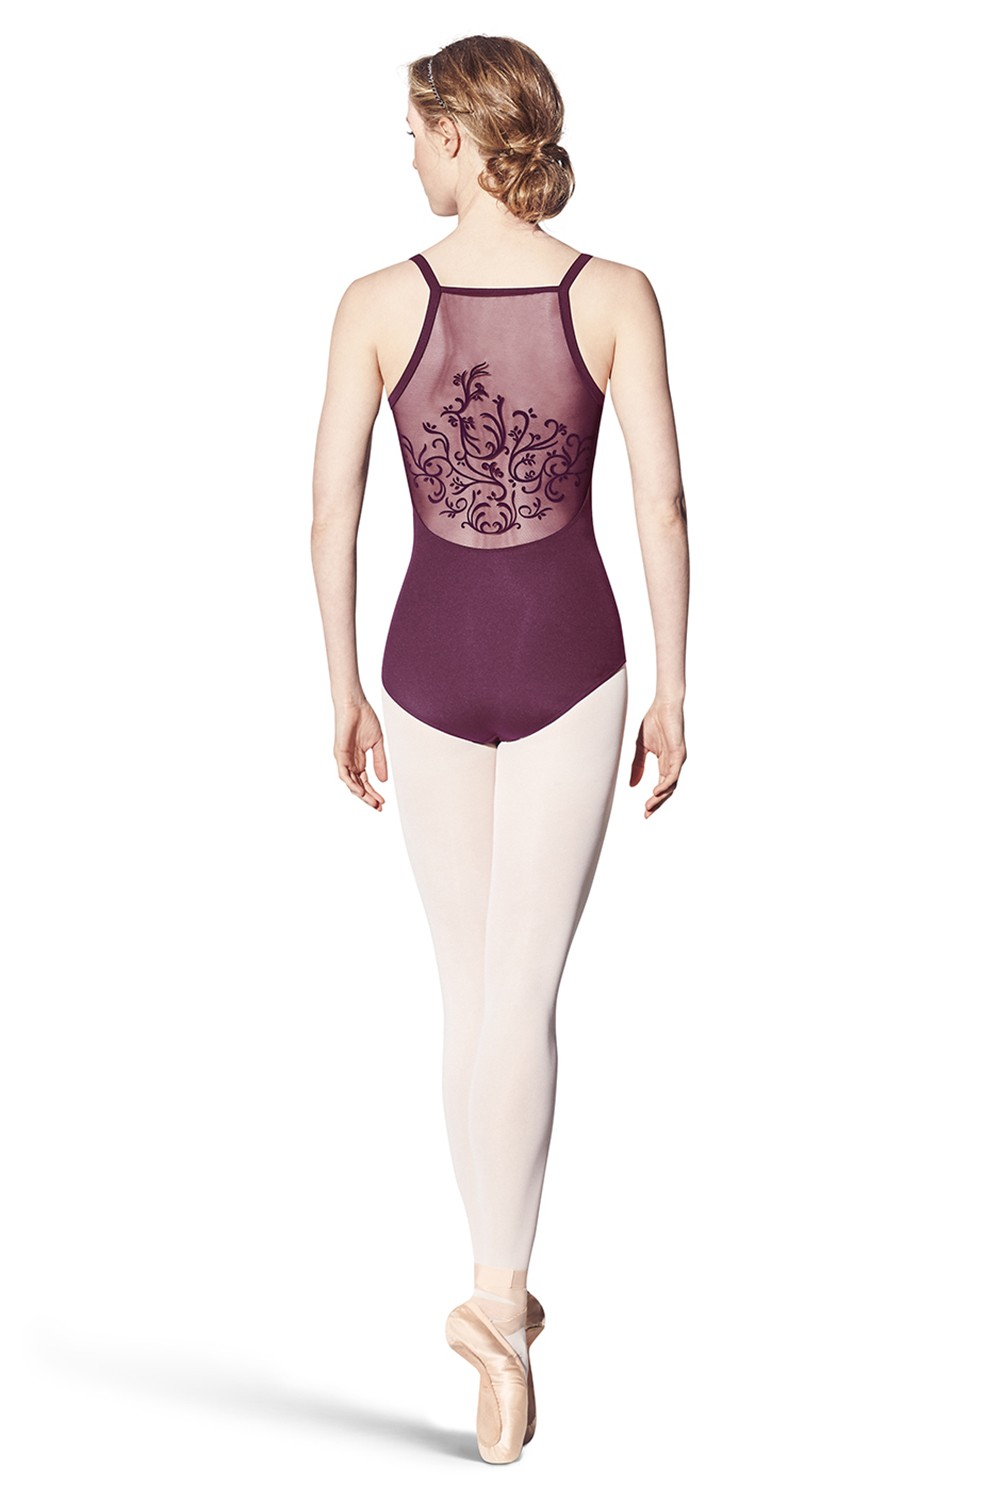 Basille Womens Camisole Leotards